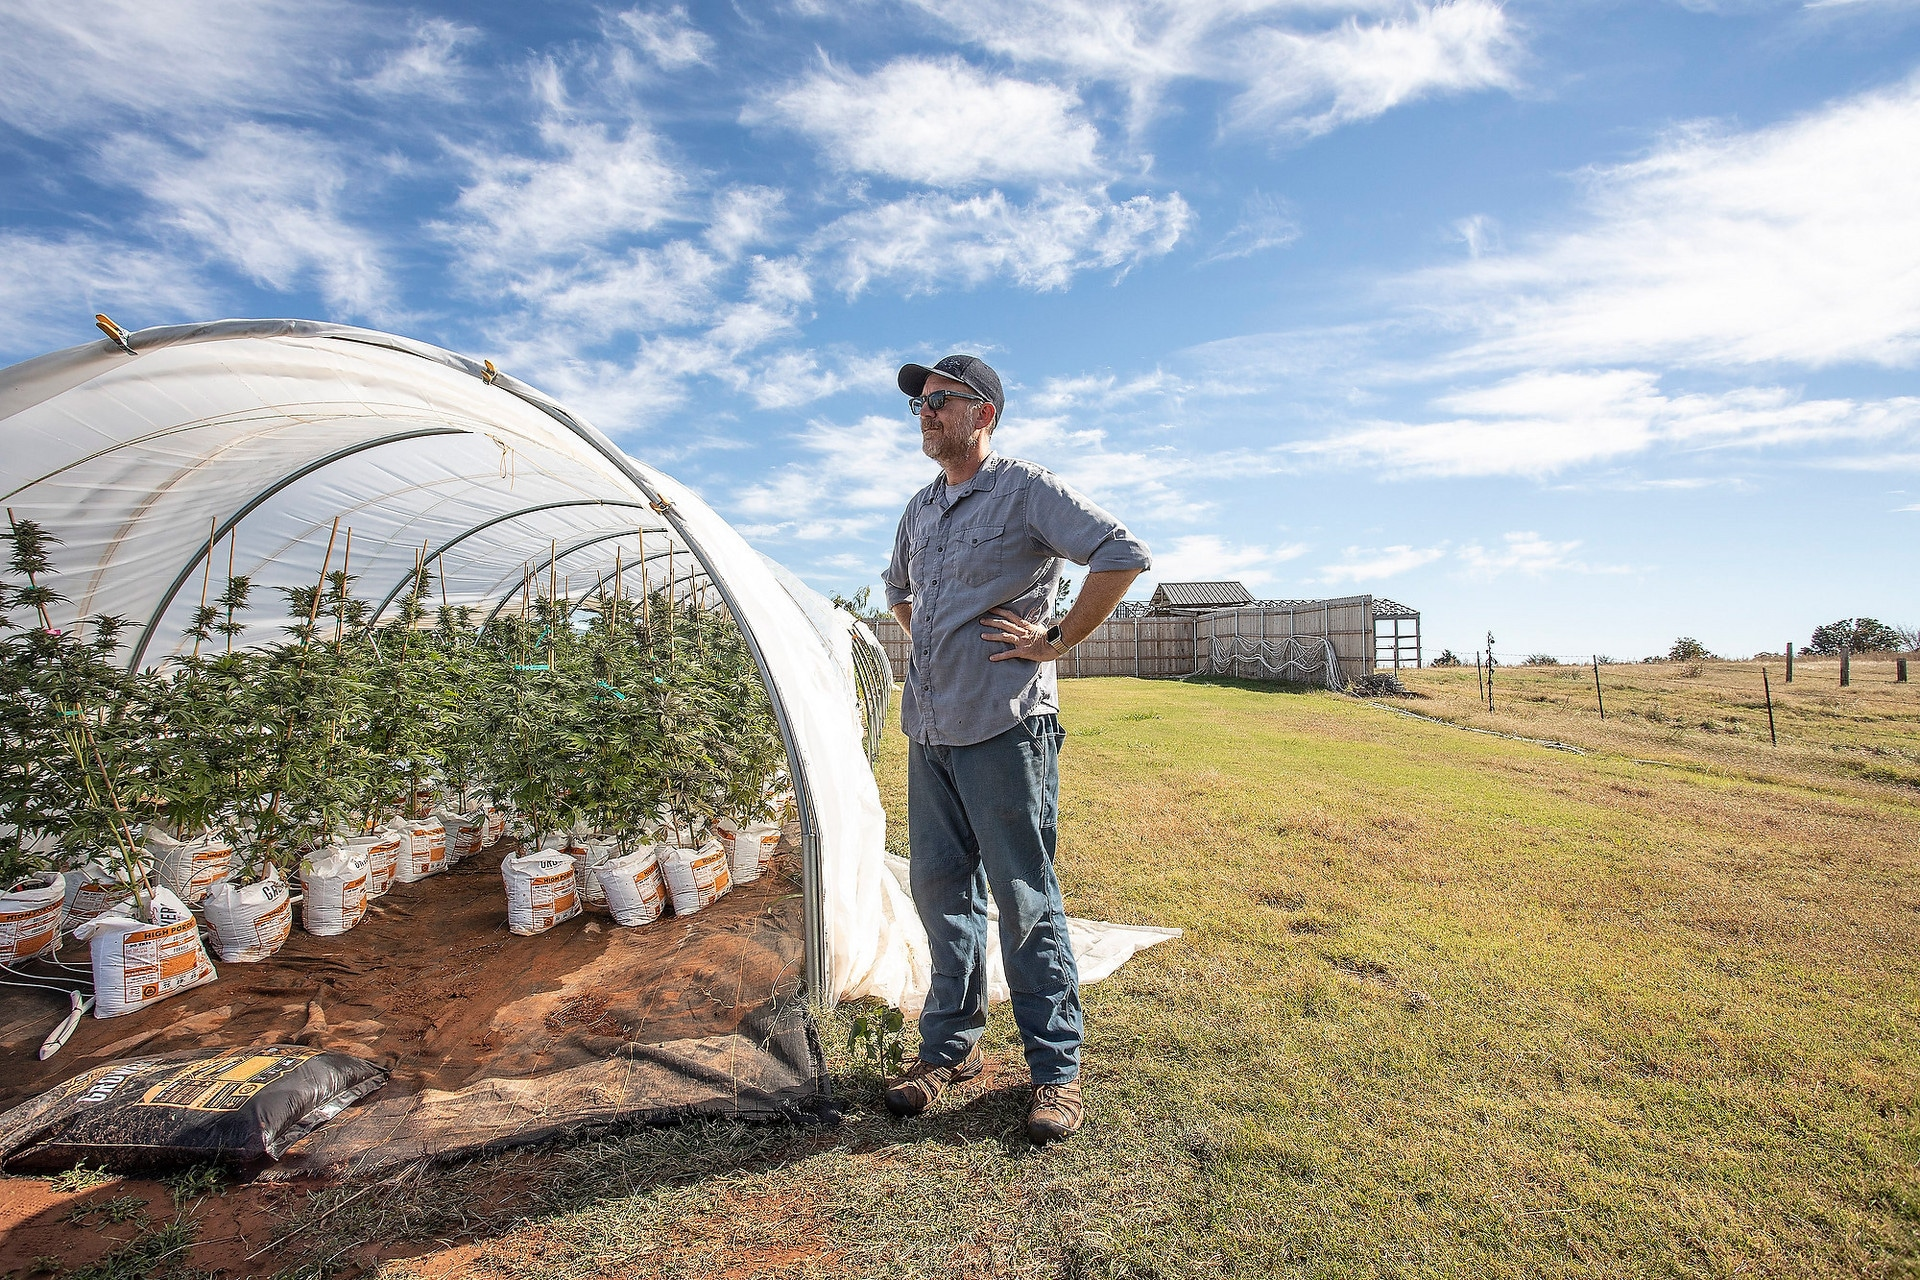 How oklahoma became the largest cannabis market in the country